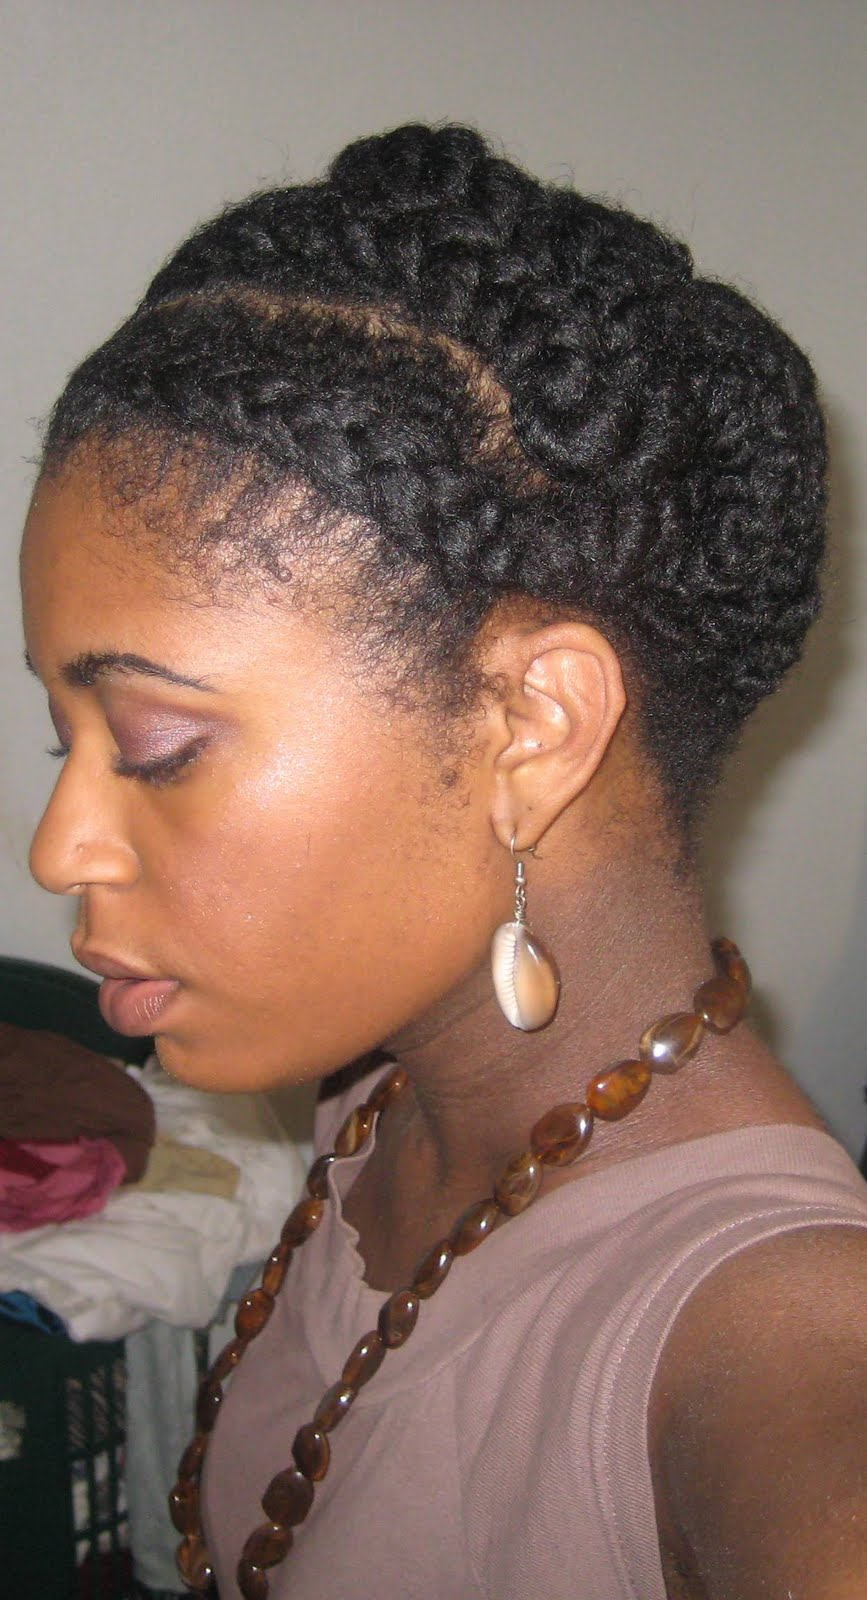 layered sew in weave hairstyles : August 1, 2014 Author: admin Posted in Hairstyles